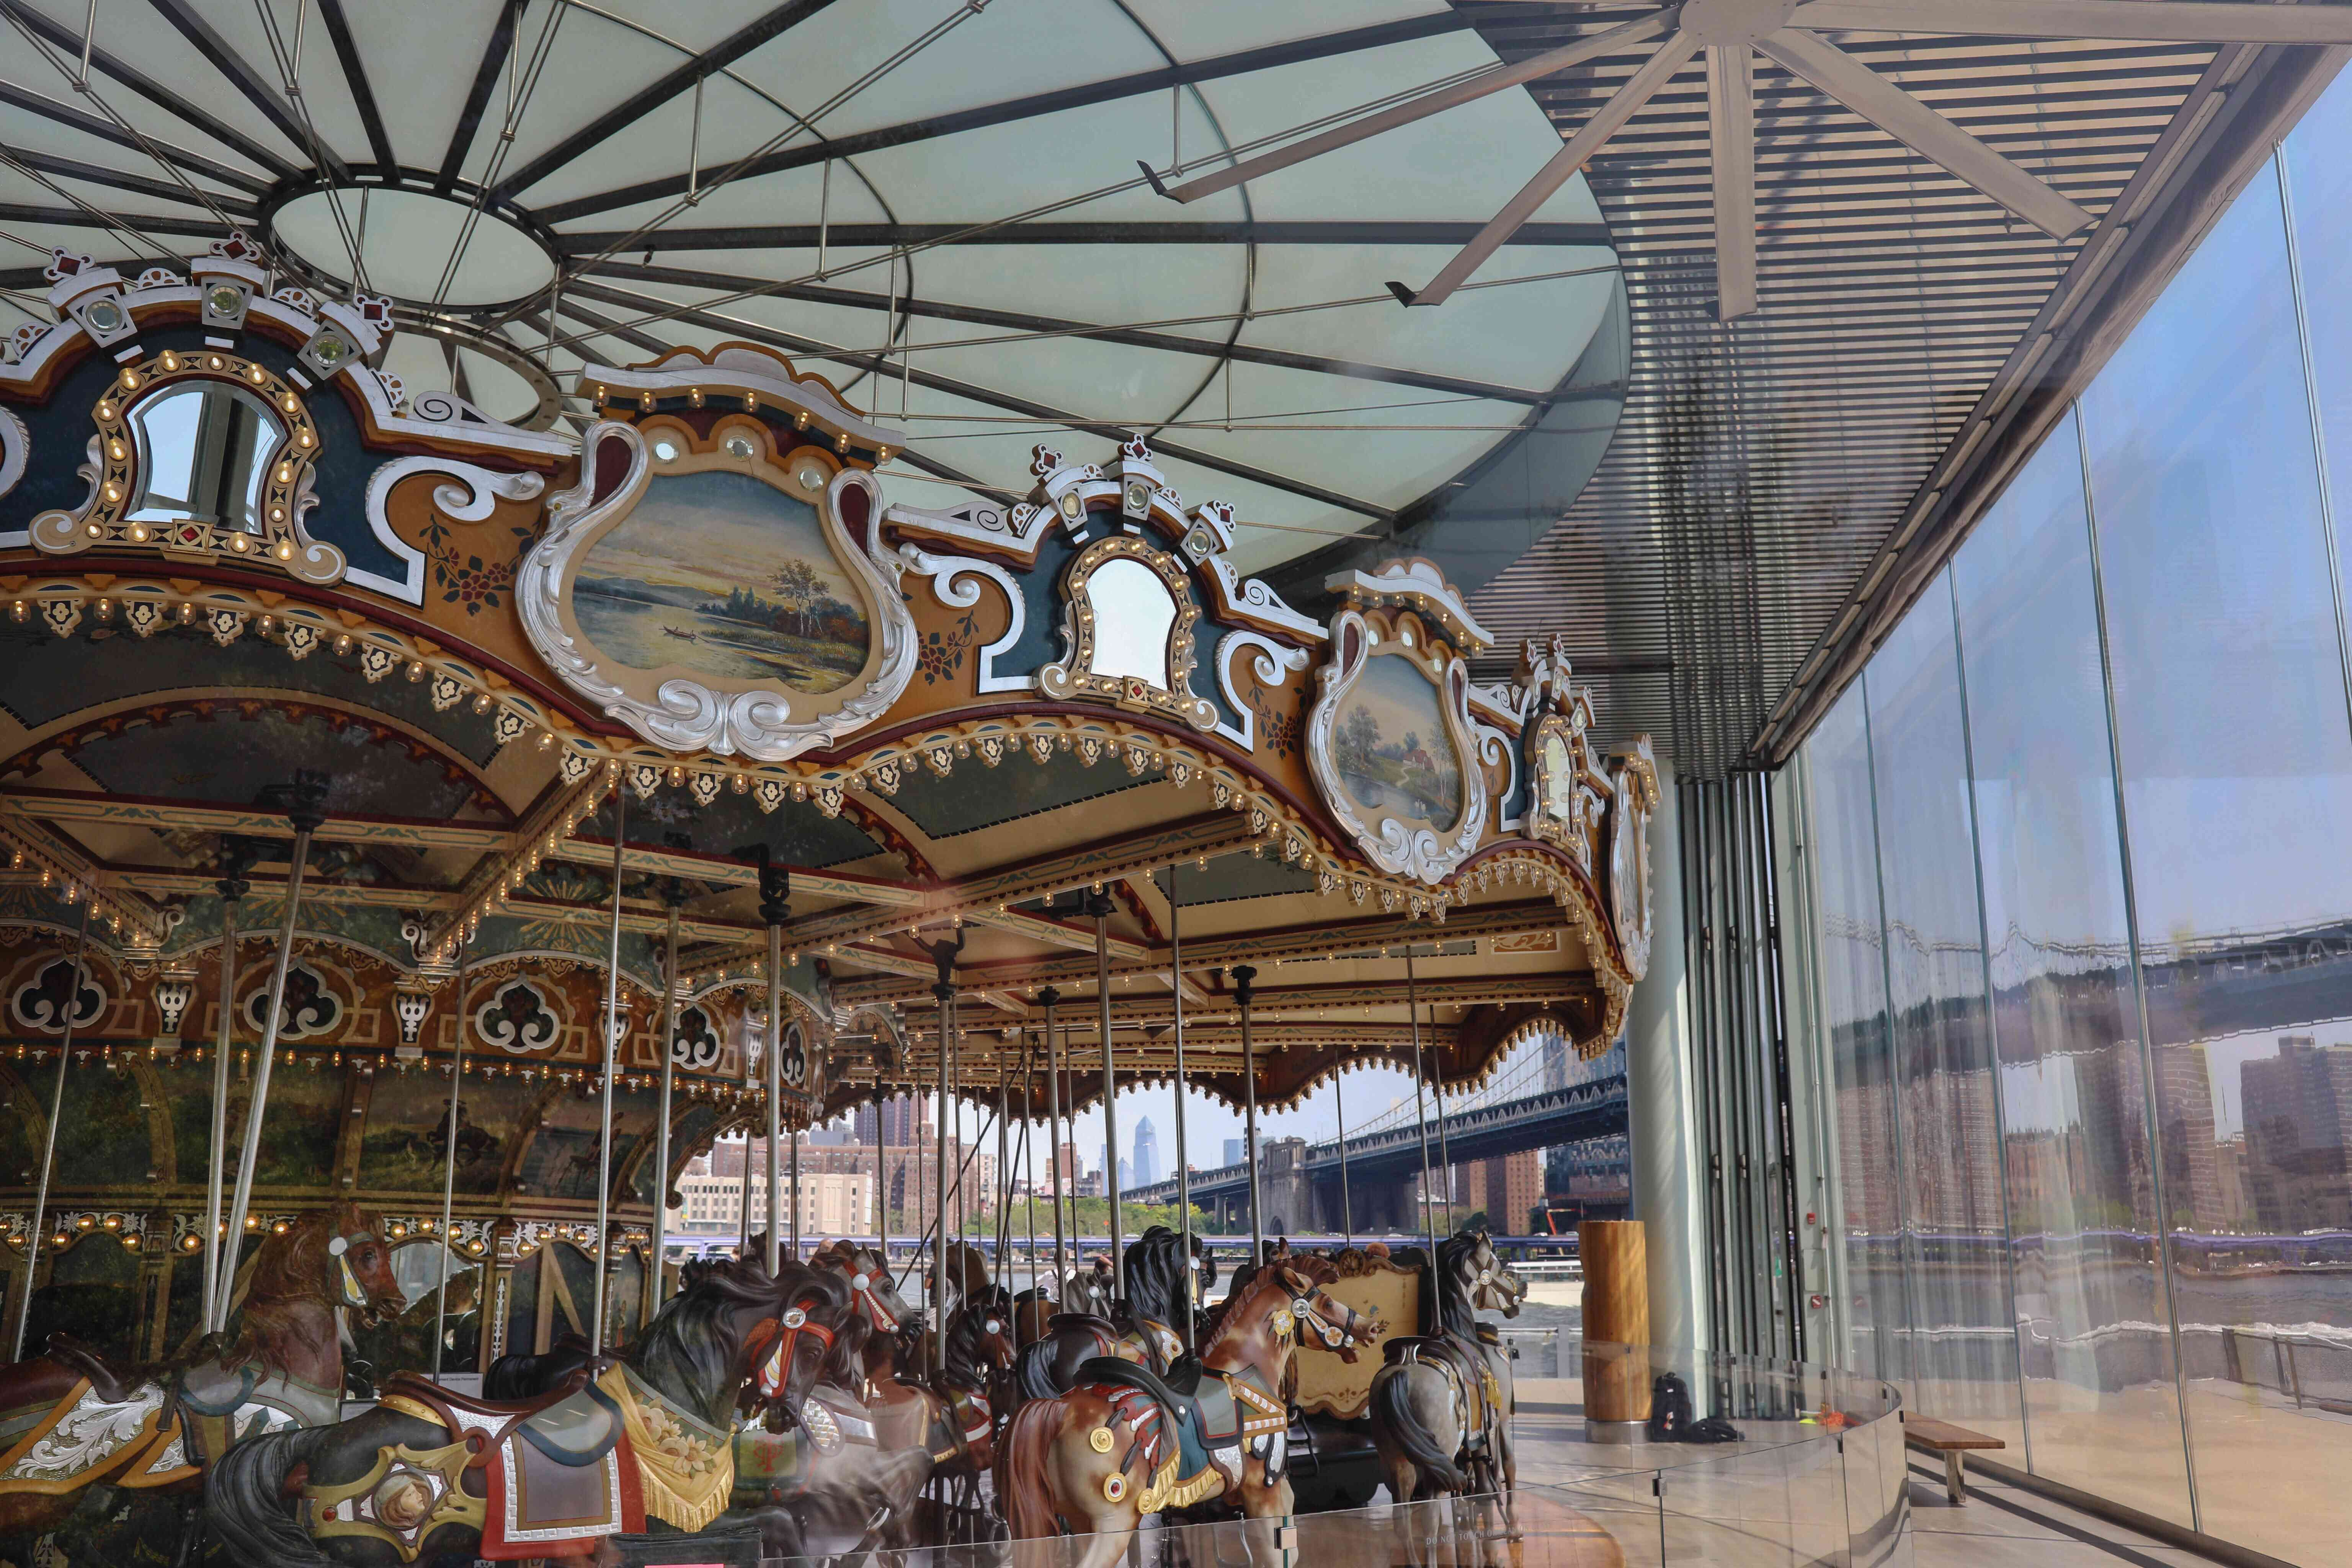 A detail shot of the decoration on Jane's Carousel